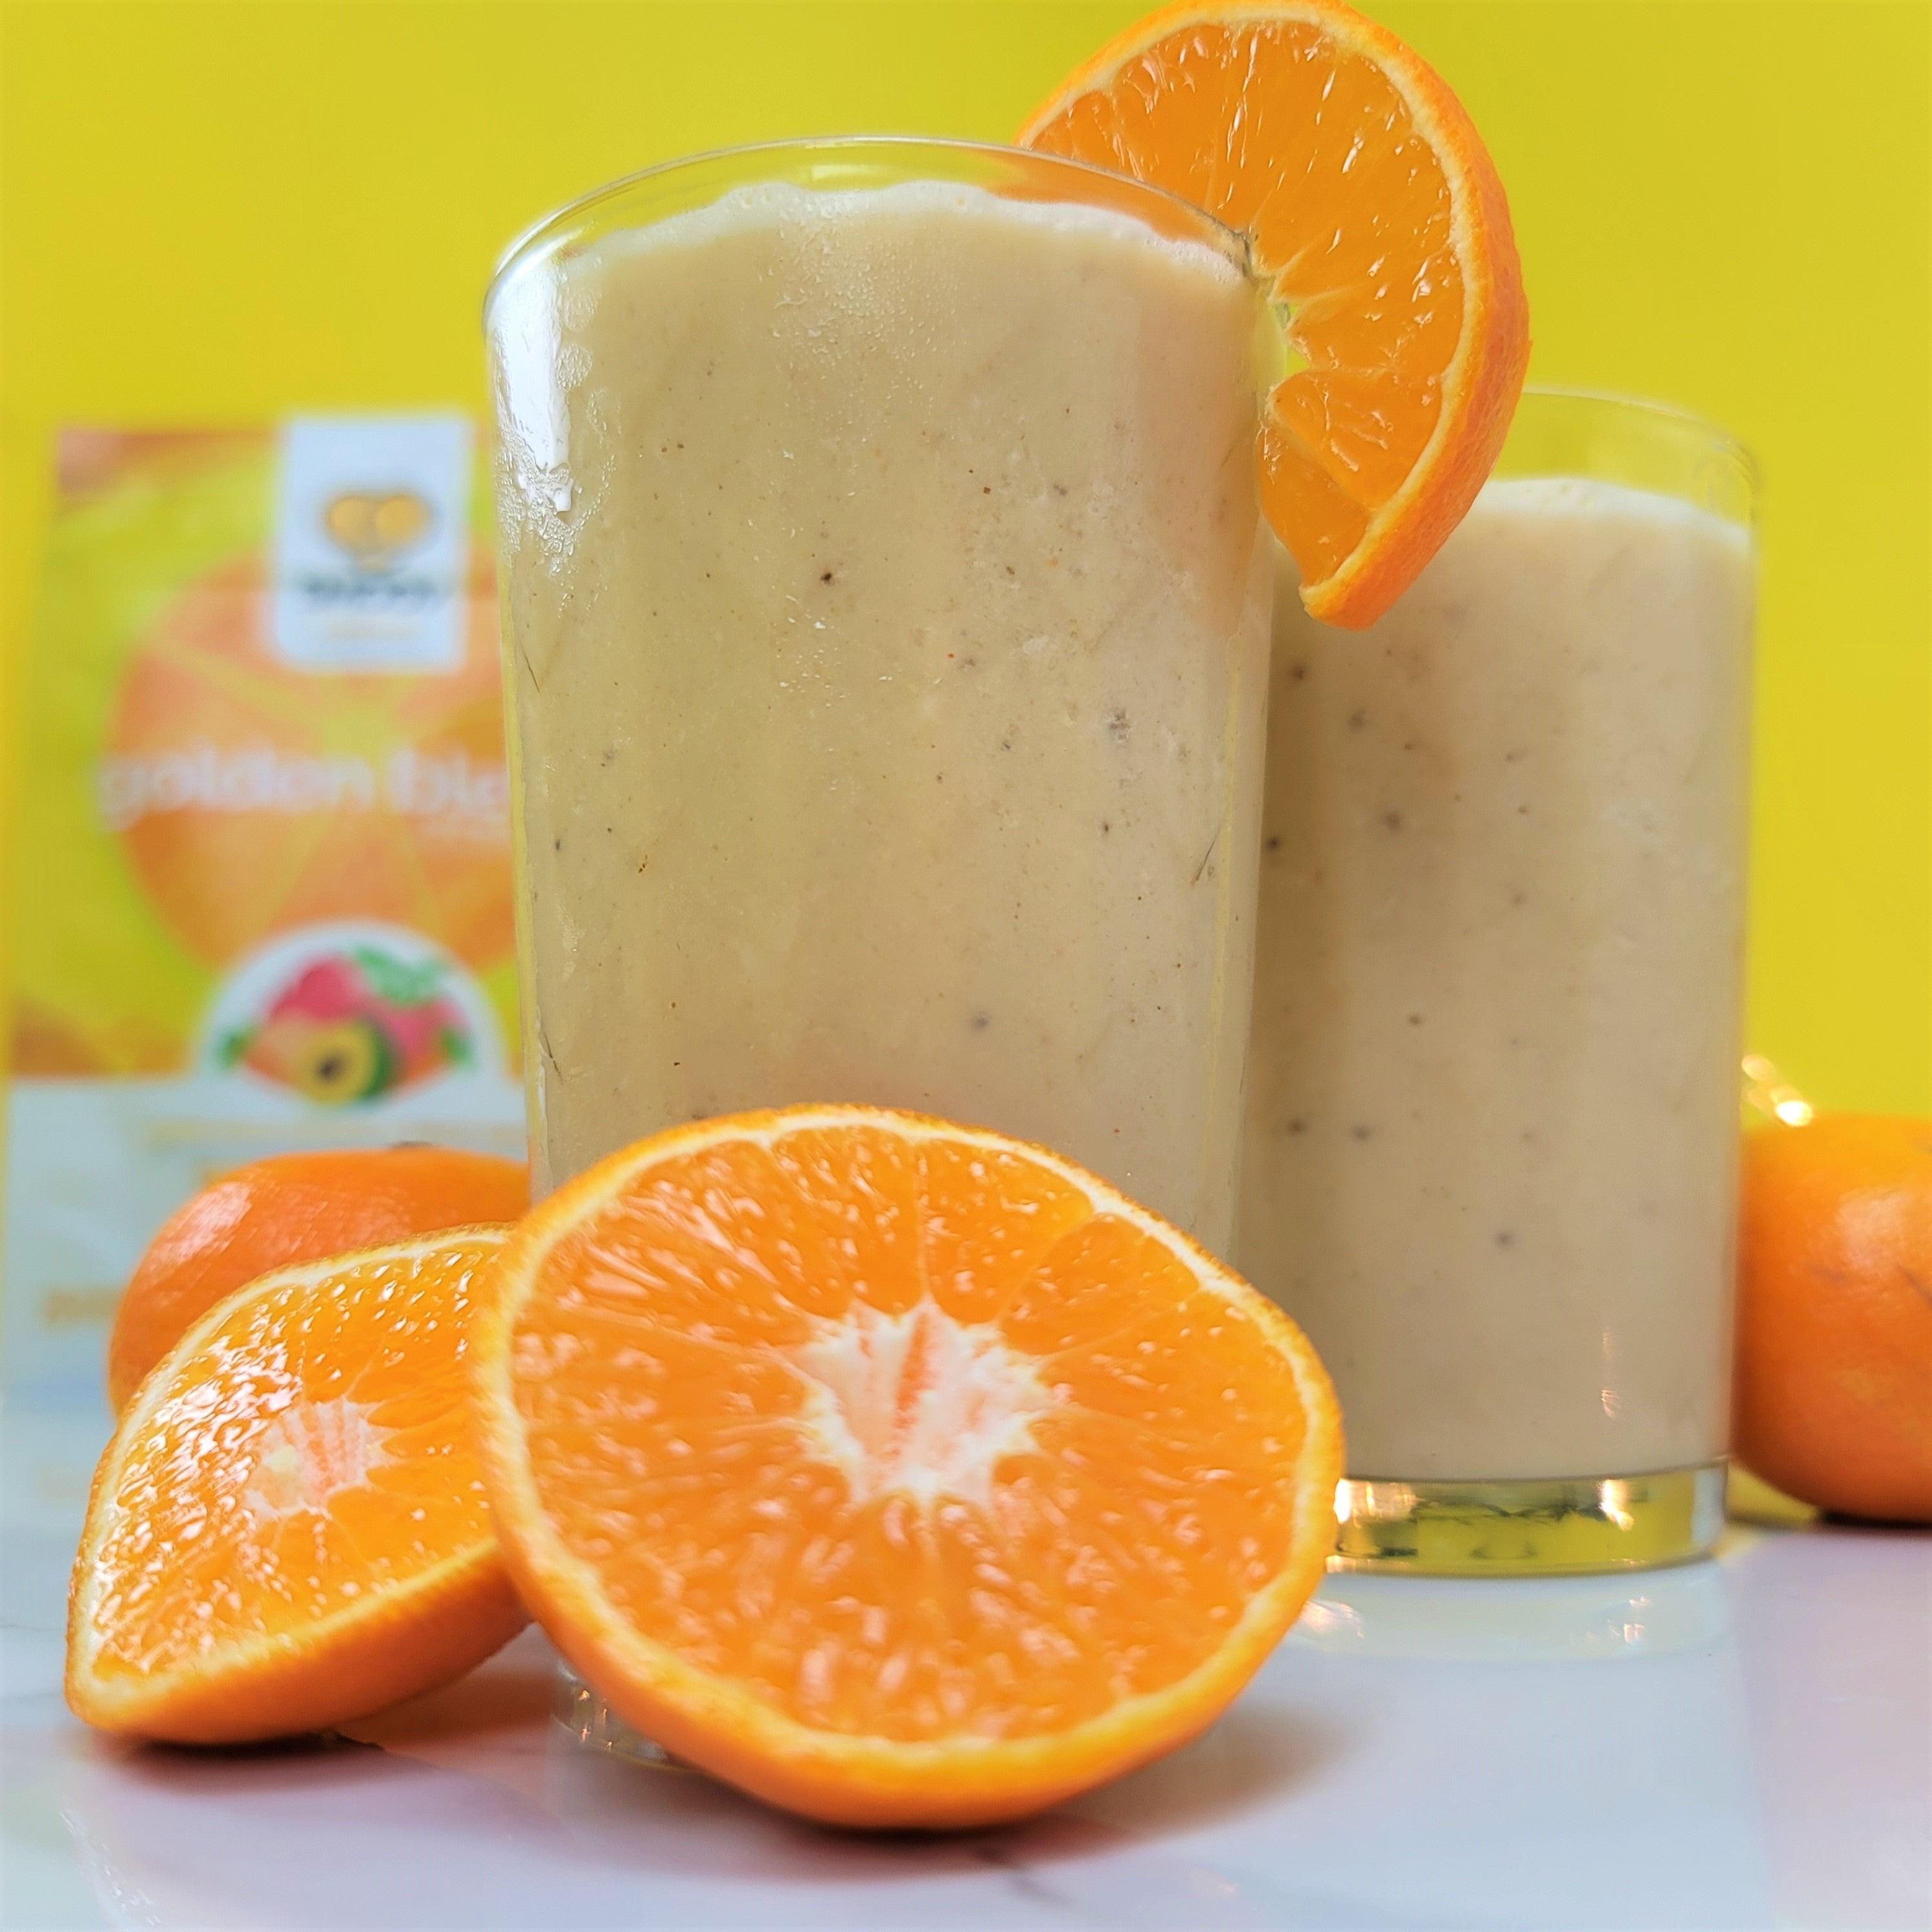 Wake up your immune system with this vibrant yellow smoothie! Delicious, super easy to make and packed with vitamins.